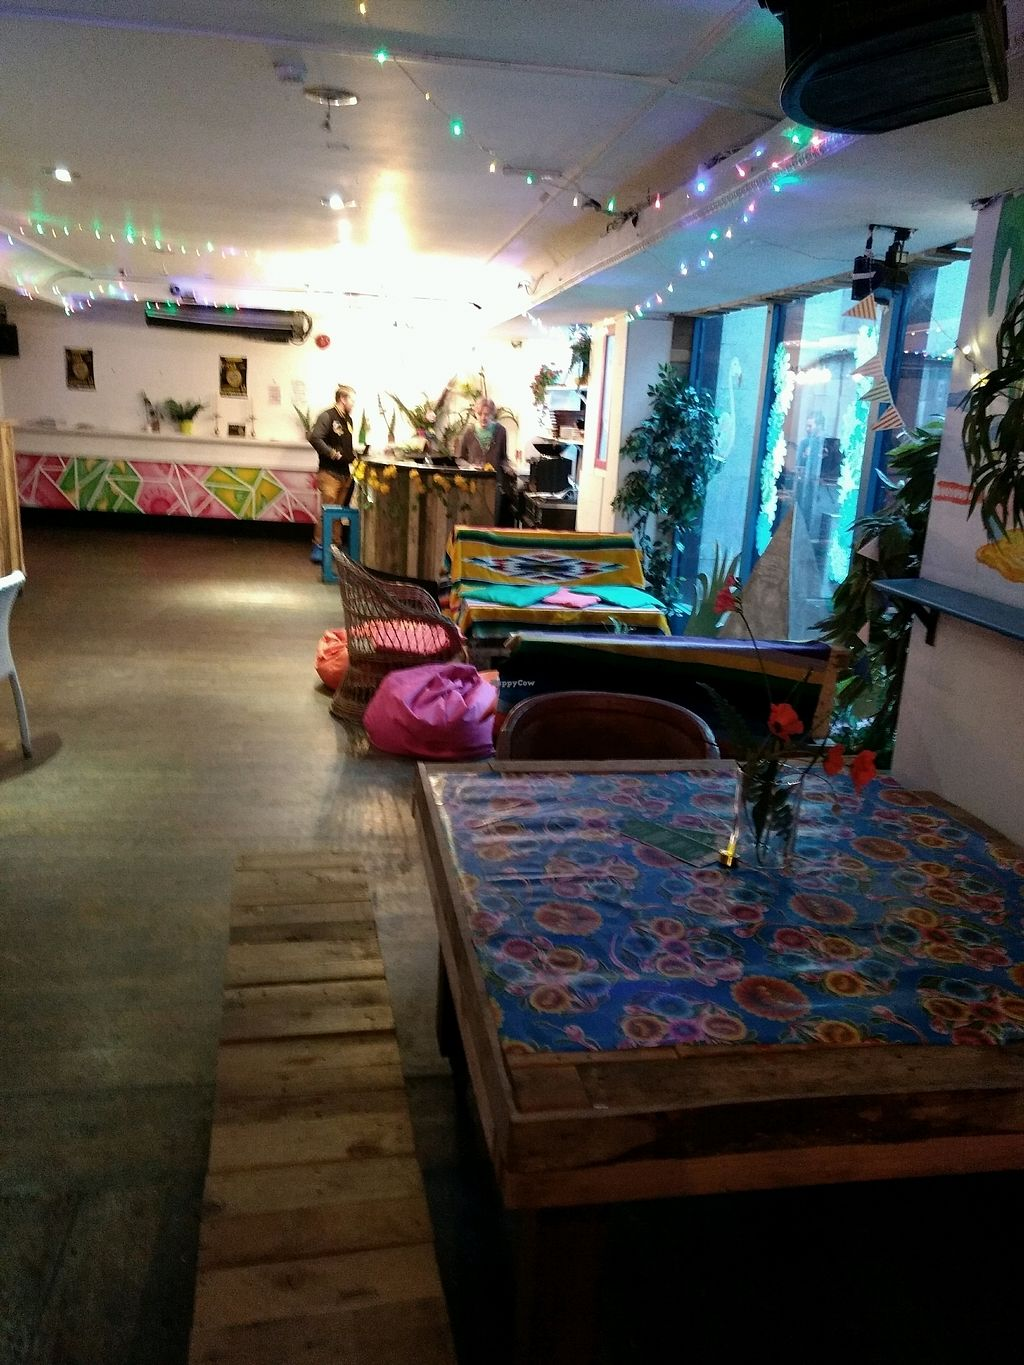 """Photo of Wildflower Creative Kitchen  by <a href=""""/members/profile/craigmc"""">craigmc</a> <br/>big <br/> January 12, 2018  - <a href='/contact/abuse/image/82039/345877'>Report</a>"""